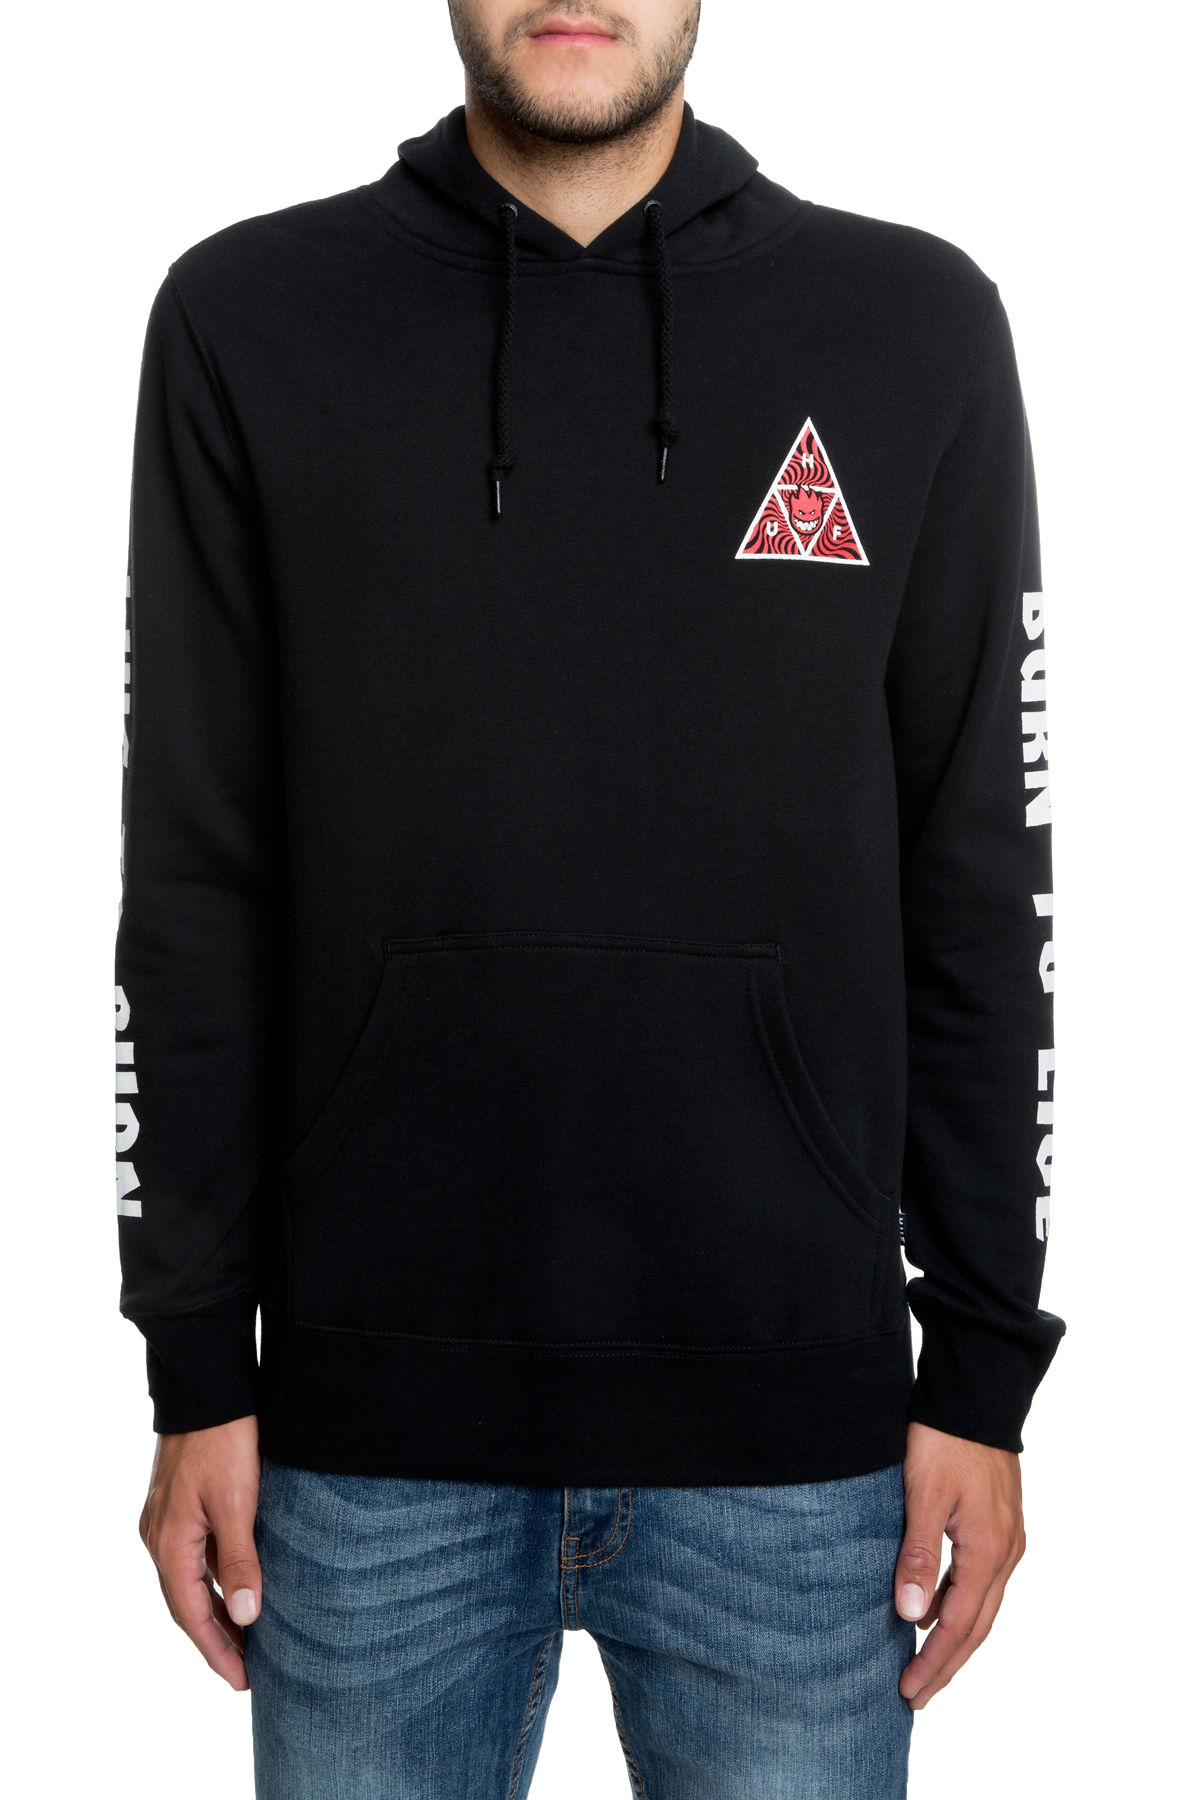 Image of The Spitfire Triangle Pullover Hoodie in Black